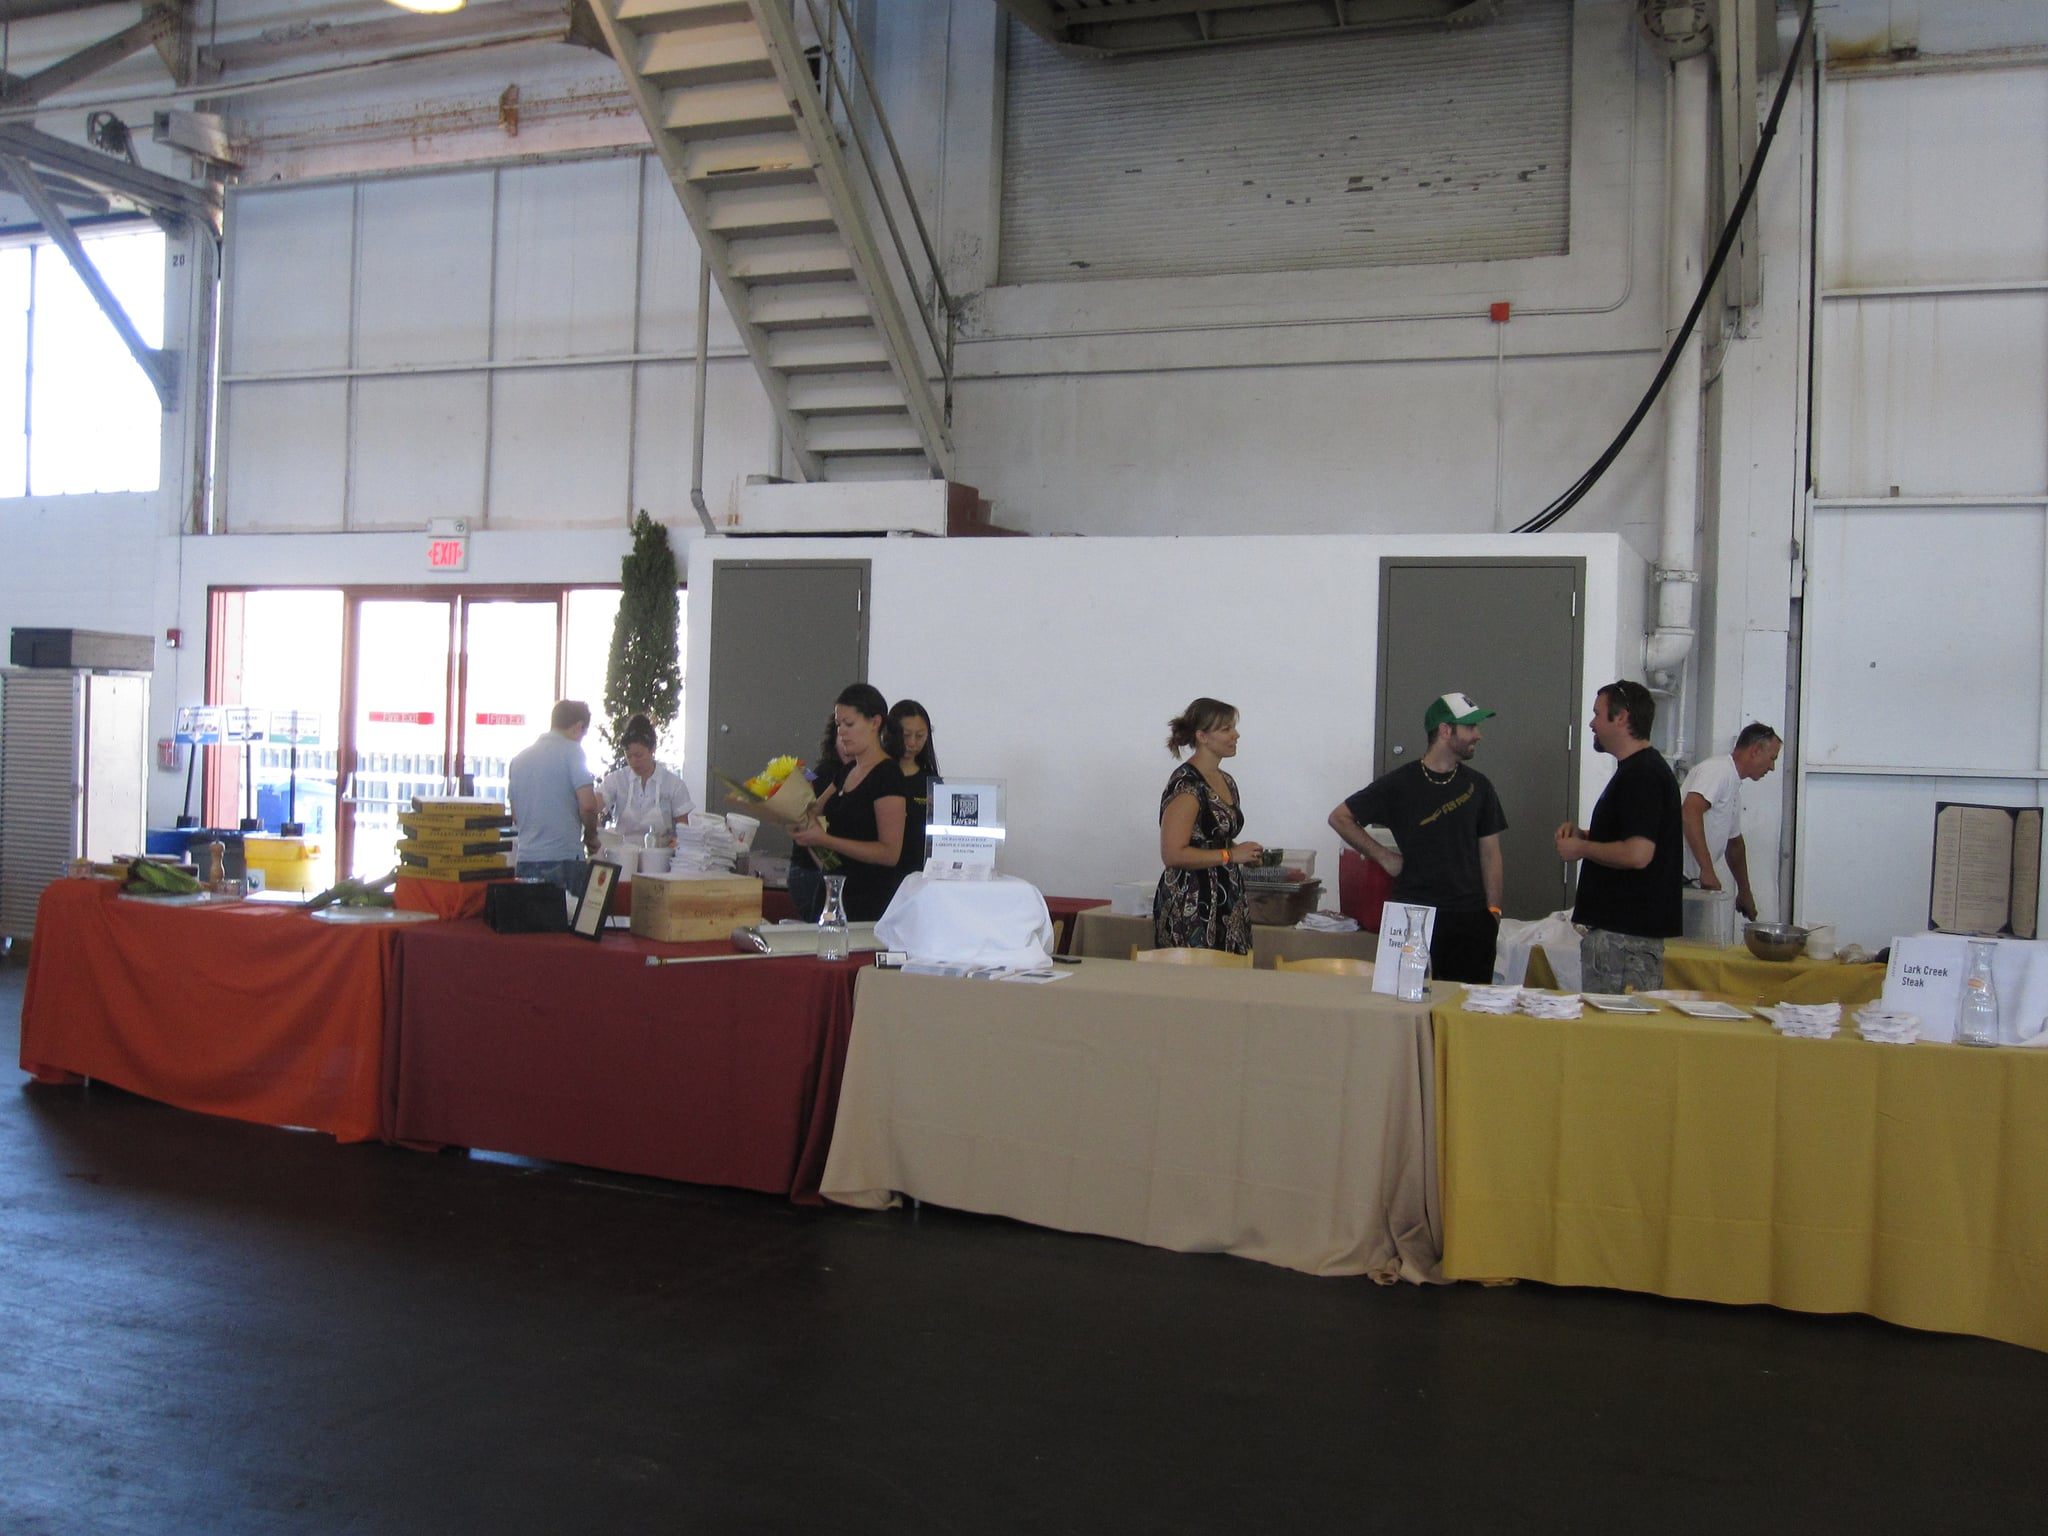 Some of the food teams set up shop.